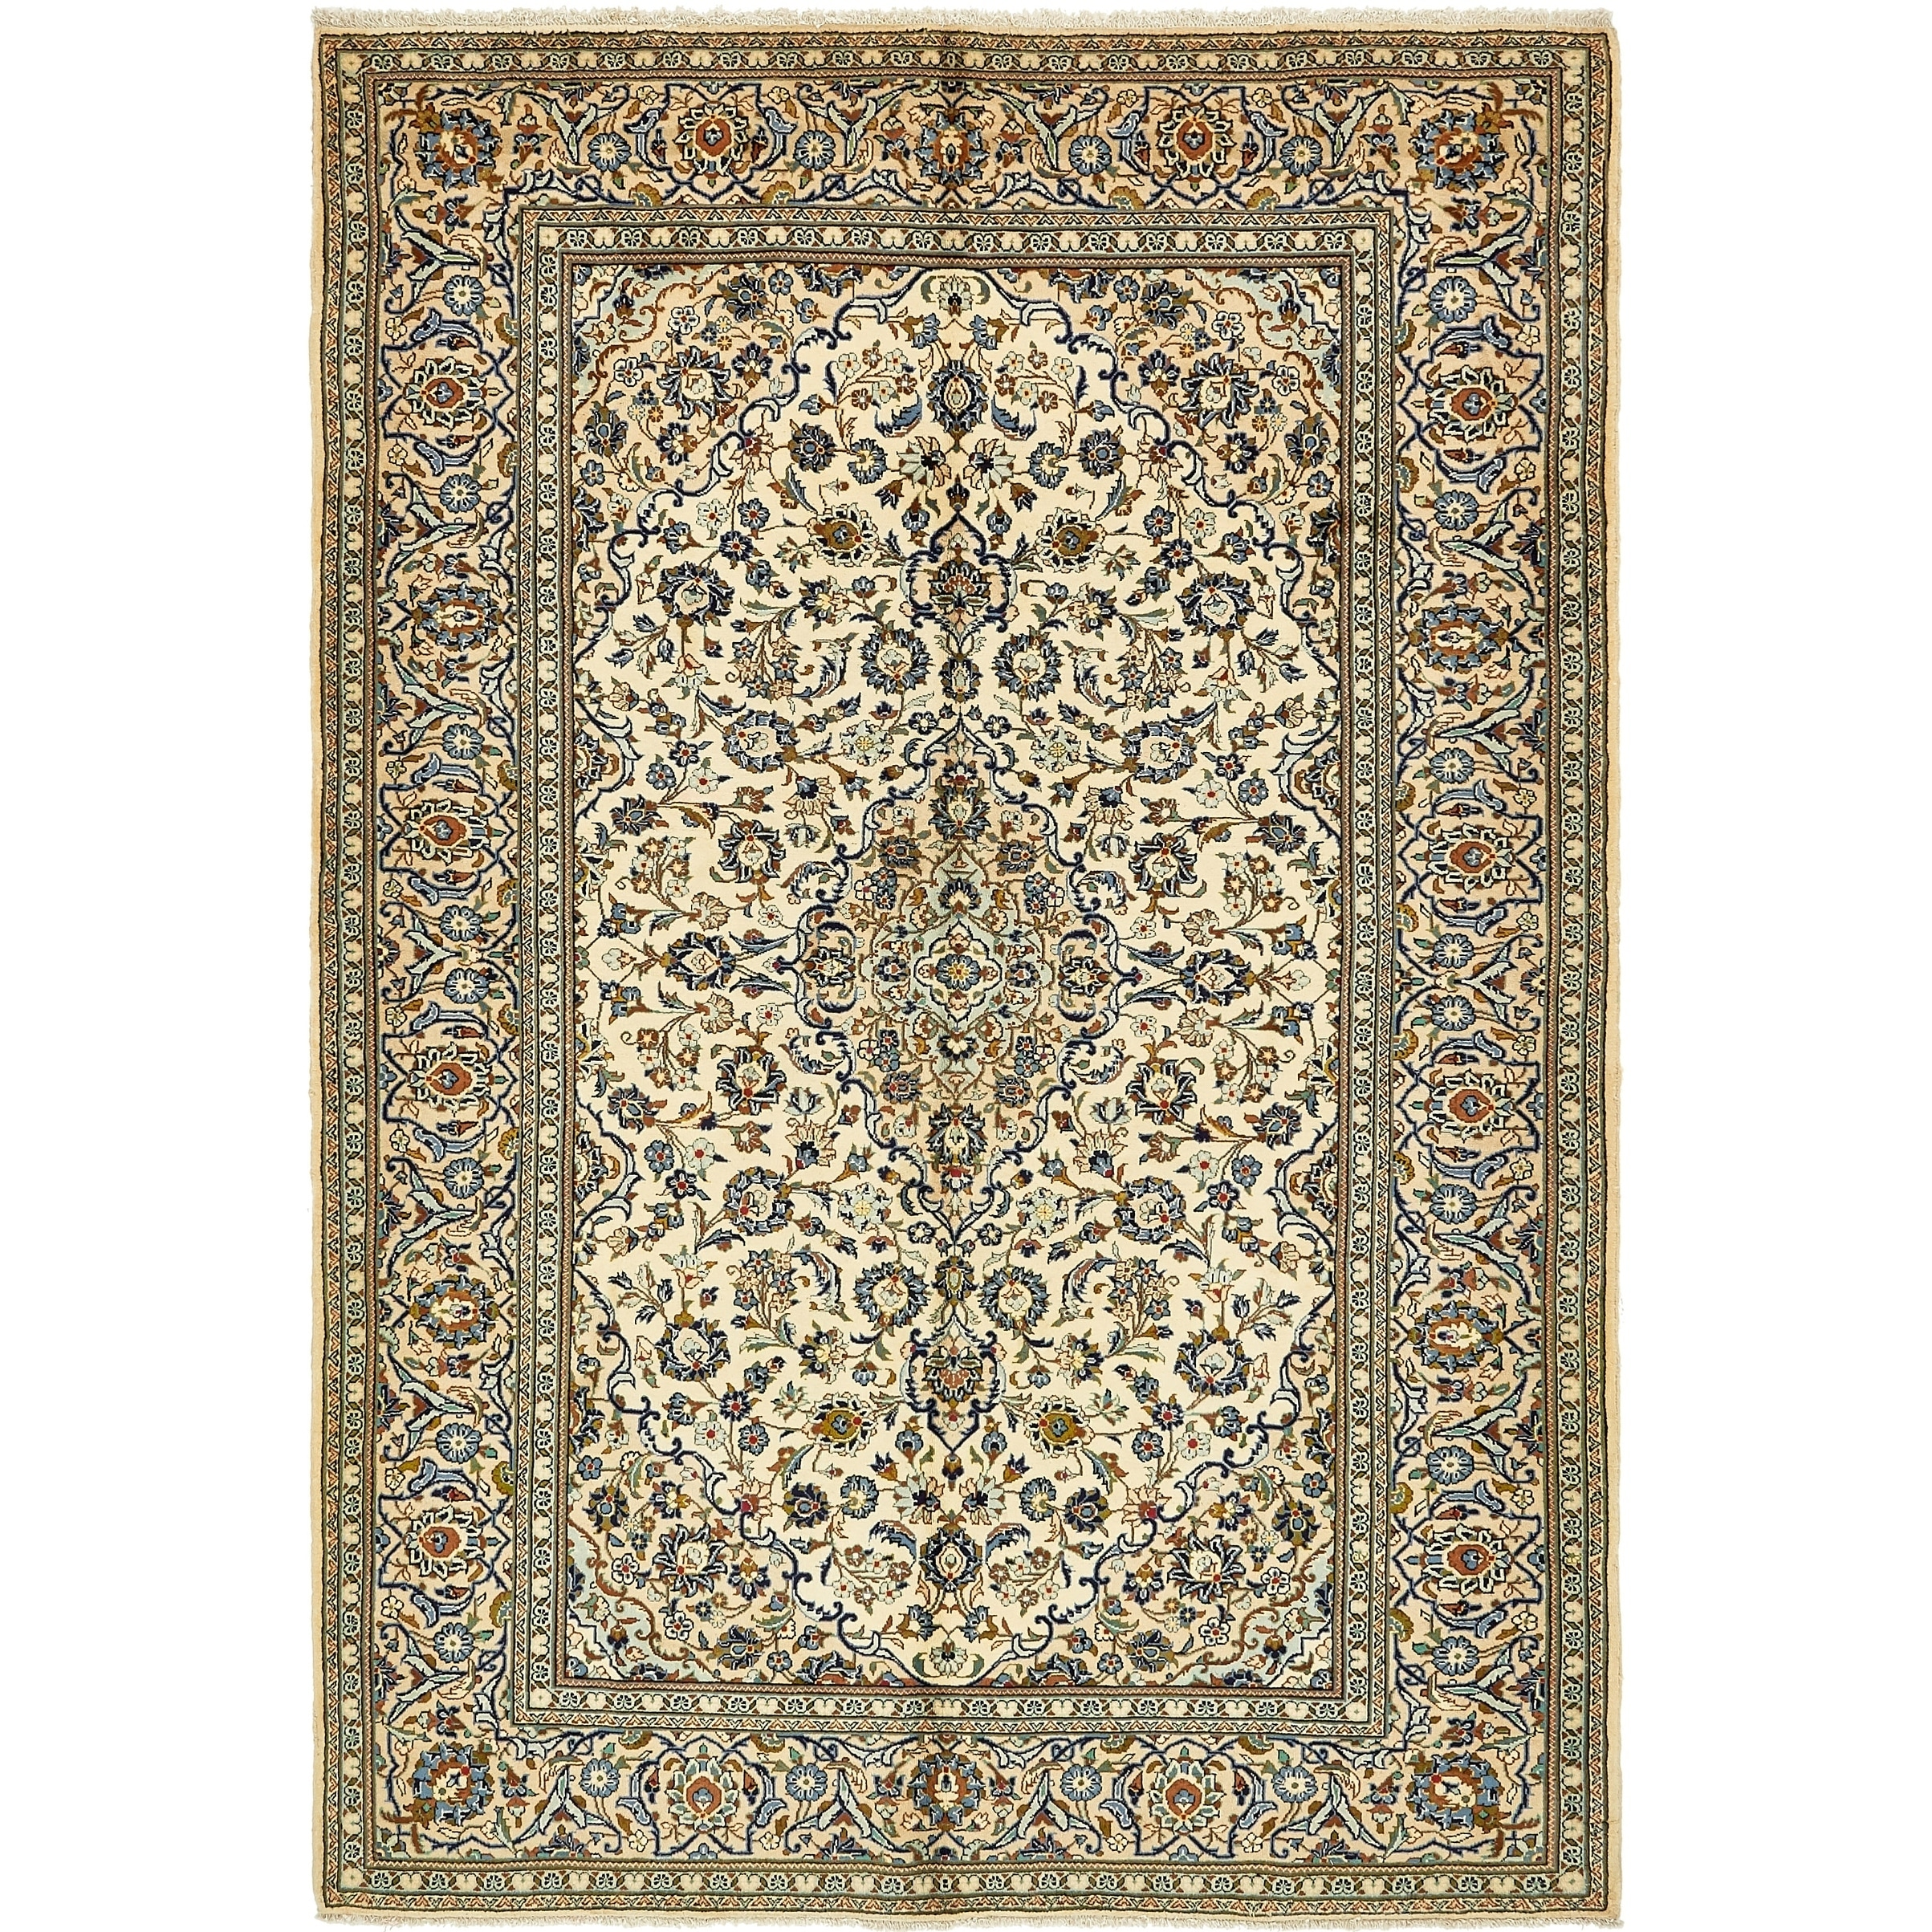 Hand Knotted Kashan Wool Area Rug - 6 6 x 9 6 (Ivory - 6 6 x 9 6)